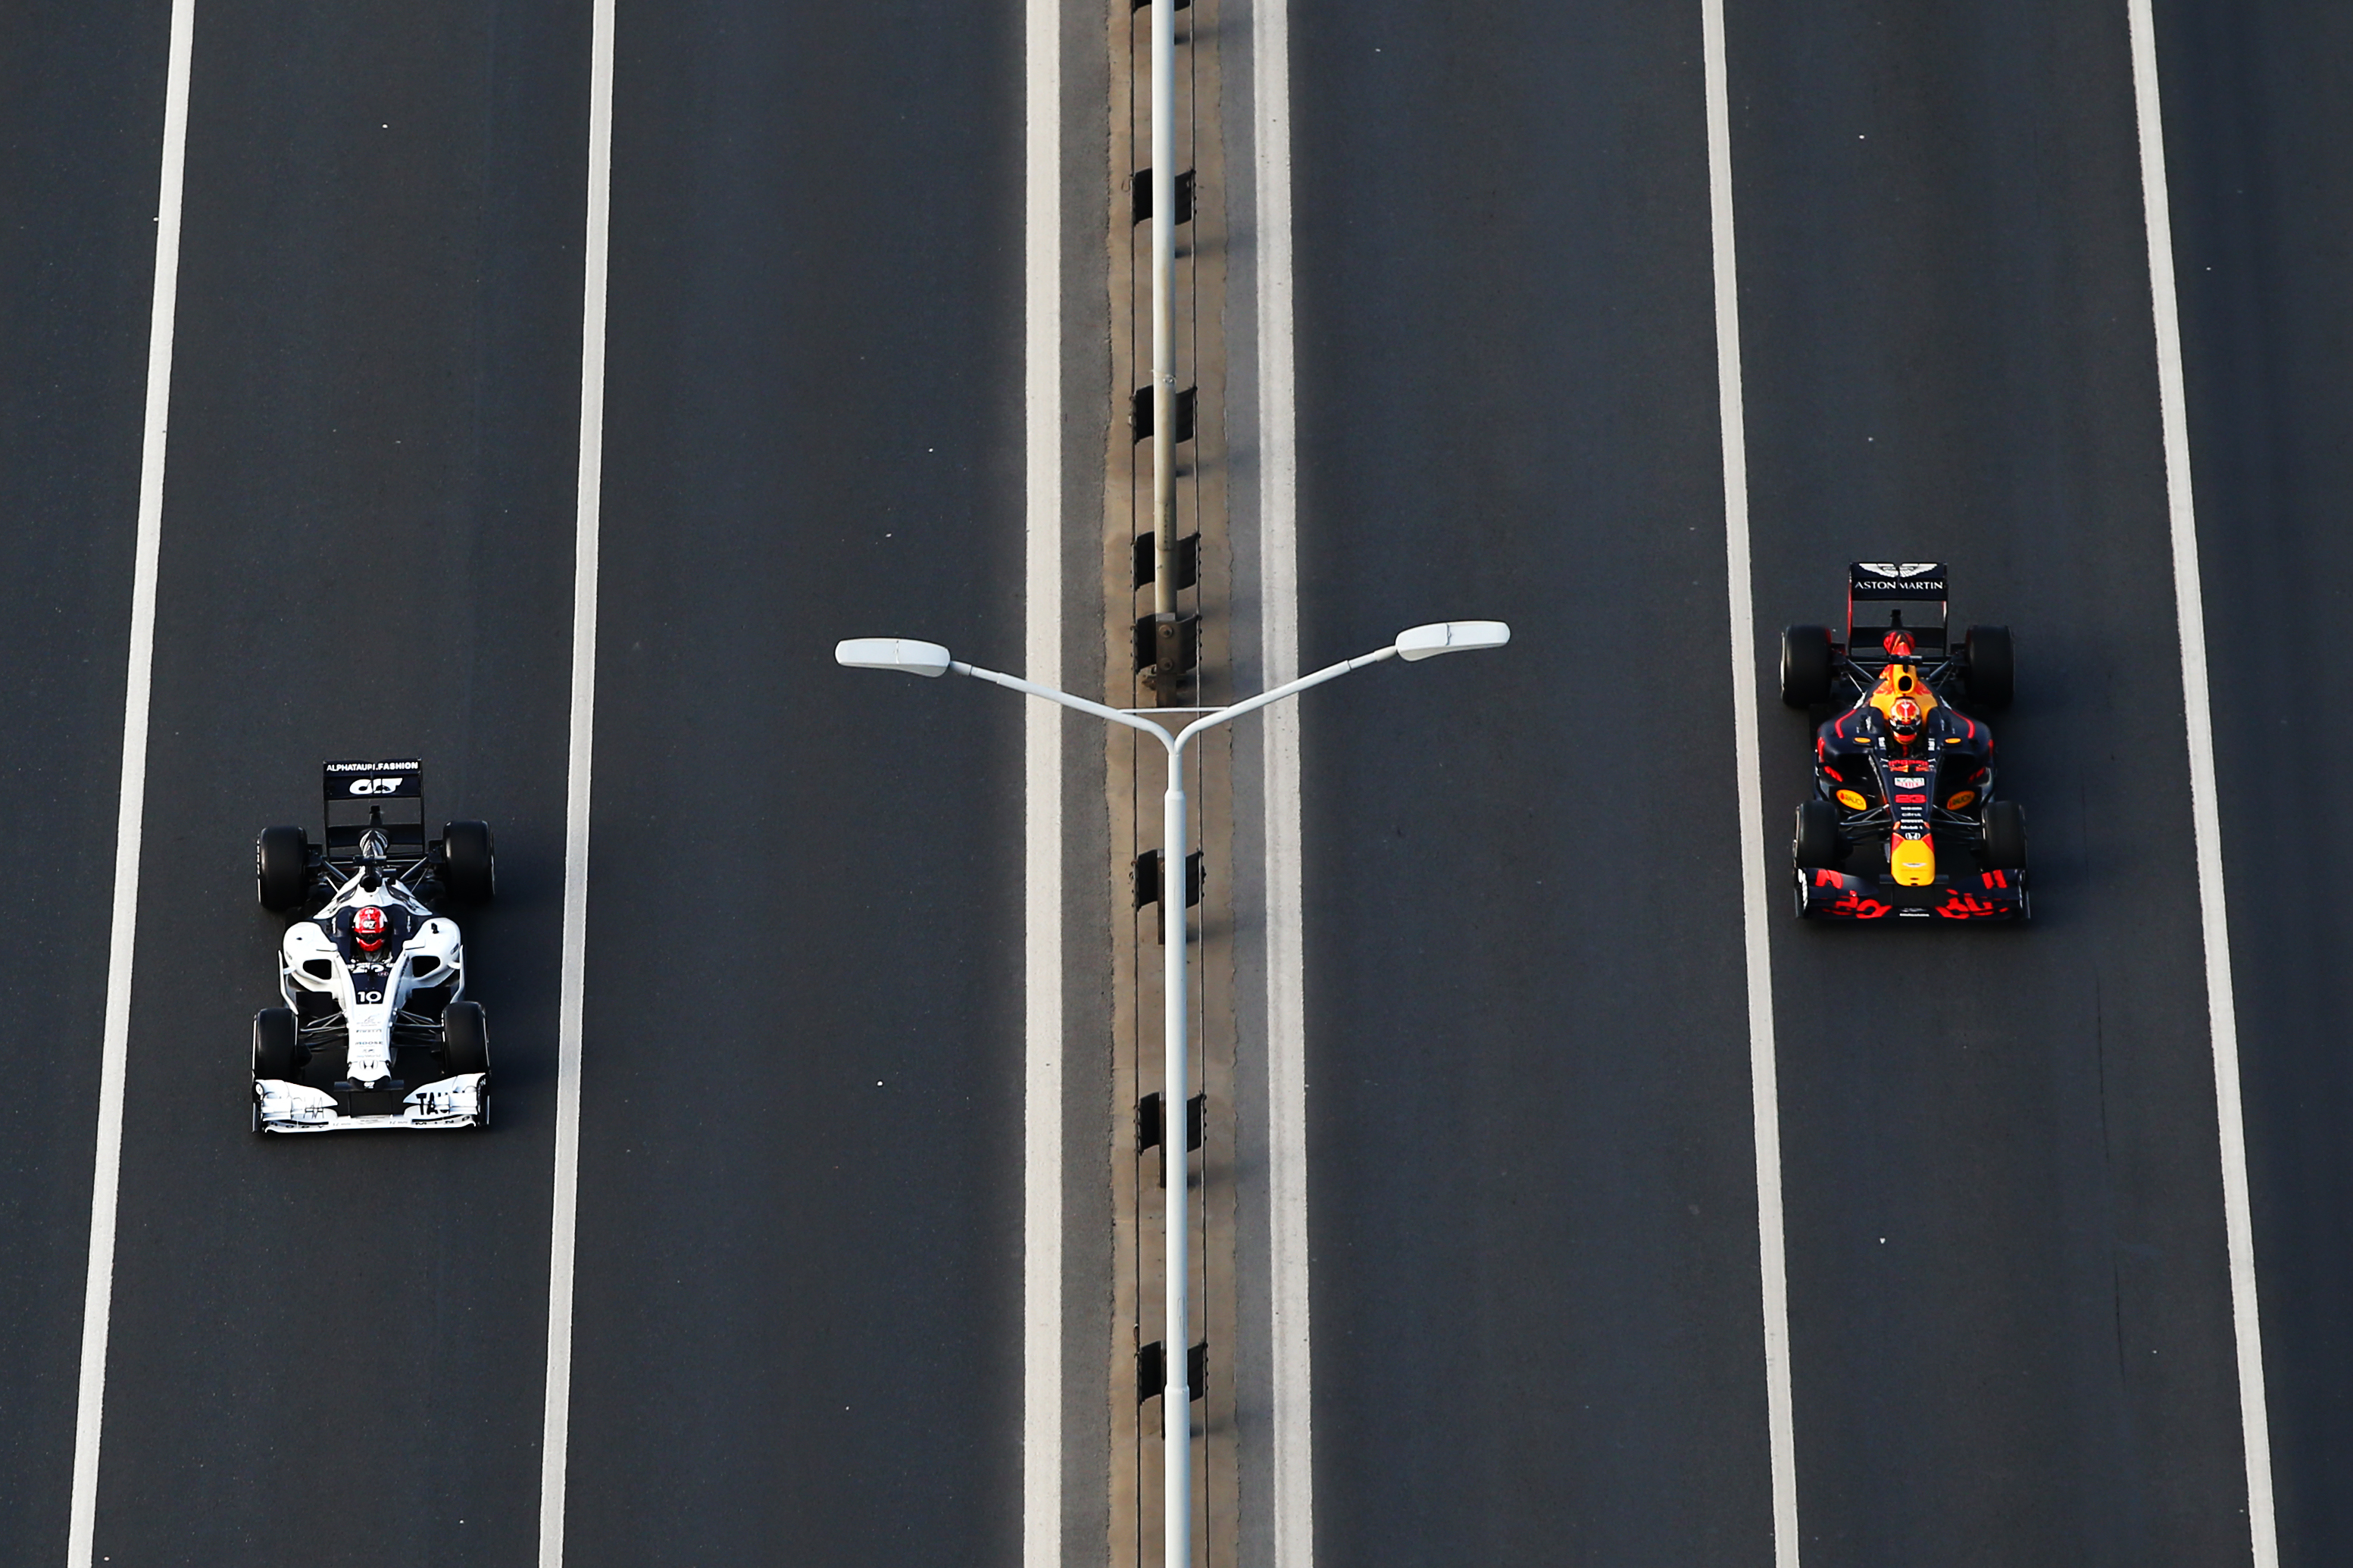 ISTANBUL, TURKEY - NOVEMBER 11: Alexander Albon of Thailand and Red Bull Racing and Pierre Gasly of France and Scuderia AlphaTauri drive on 15 July Martyrs Bridge over the Bosphorus during the Red Bull Istanbulls show run on November 11, 2020 in Istanbul, Turkey. (Photo by Bryn Lennon/Getty Images ) // Getty Images / Red Bull Content Pool  // SI202011110273 // Usage for editorial use only //